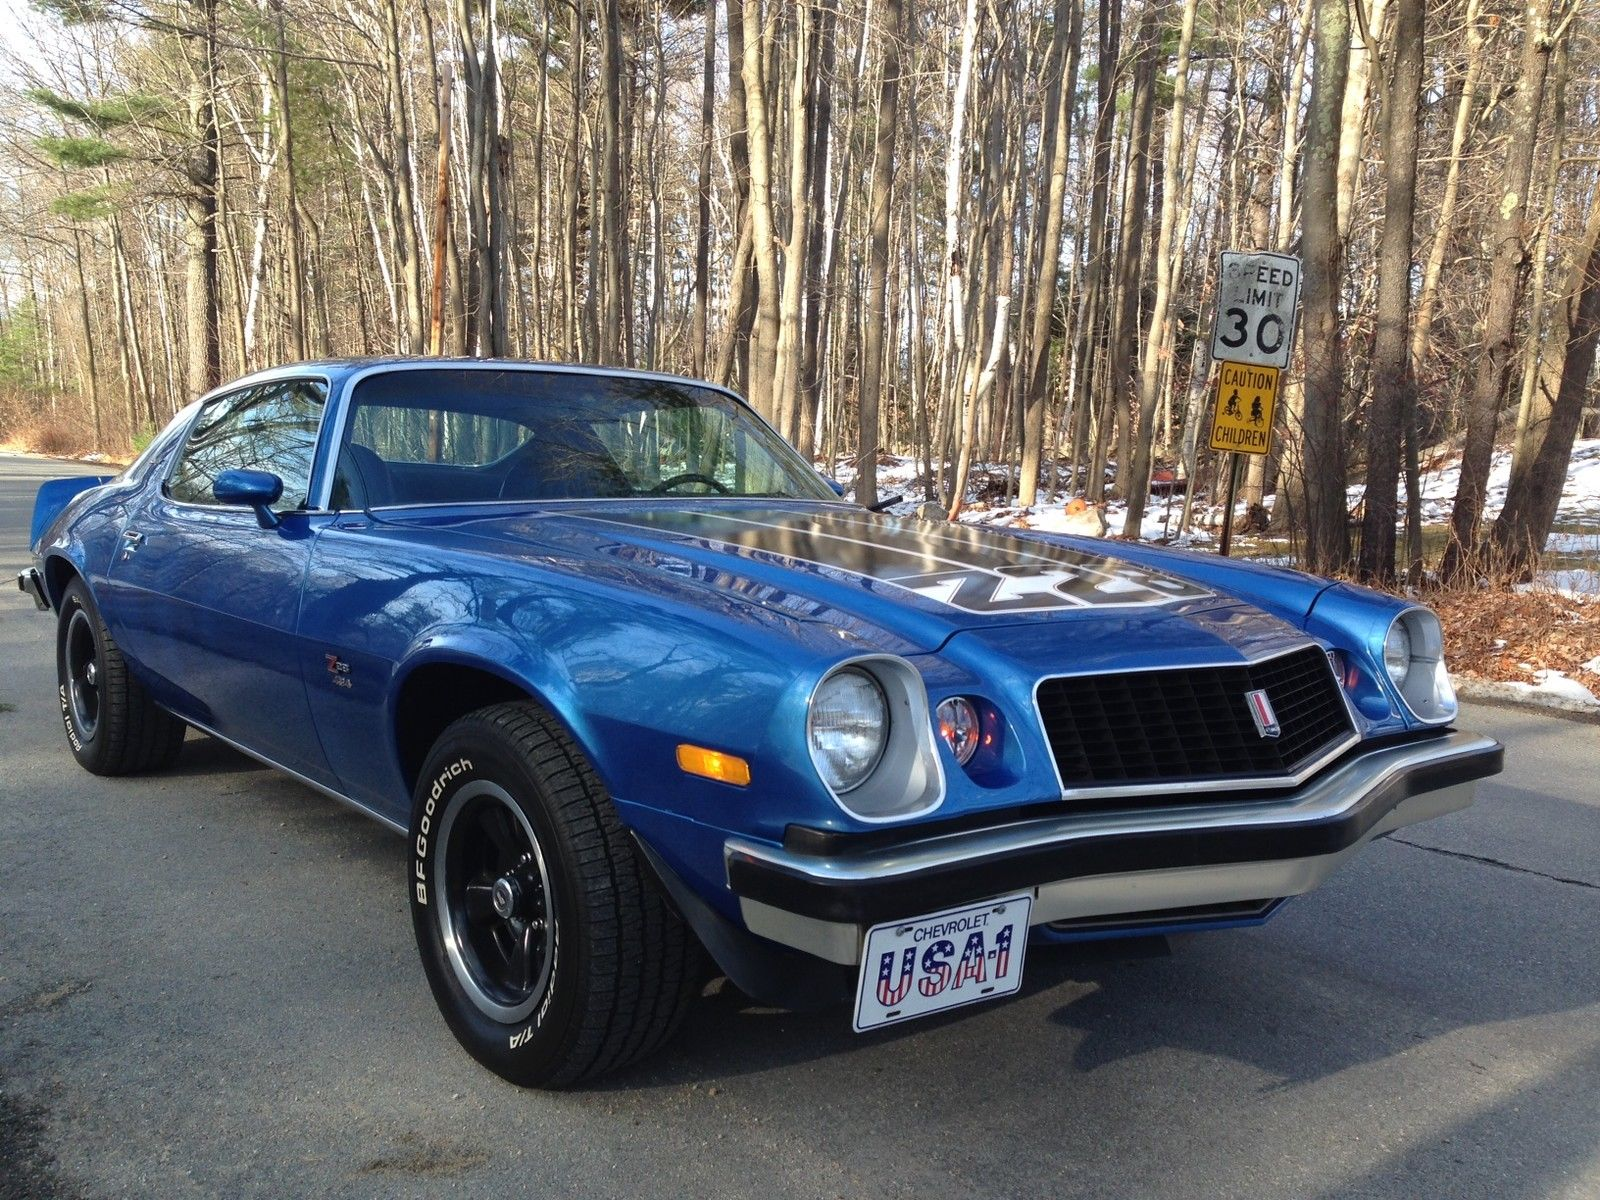 1974 Camaro Z 28 Classic Chevrolet Camaro 1974 For Sale